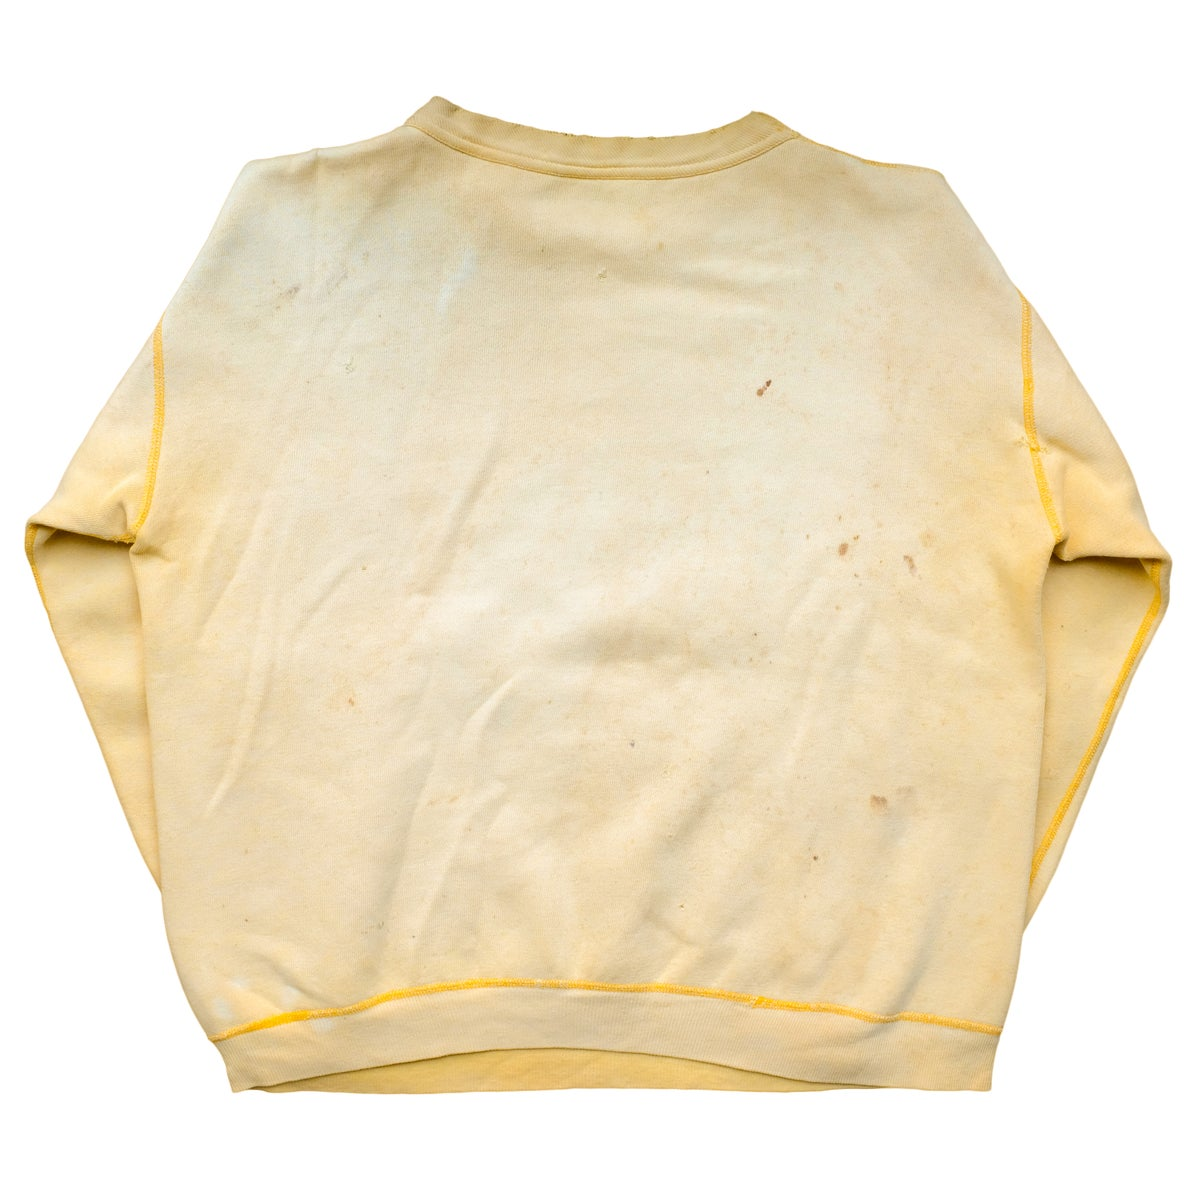 Image of Vintage 50s/60s Russell Southern Sweatshirt